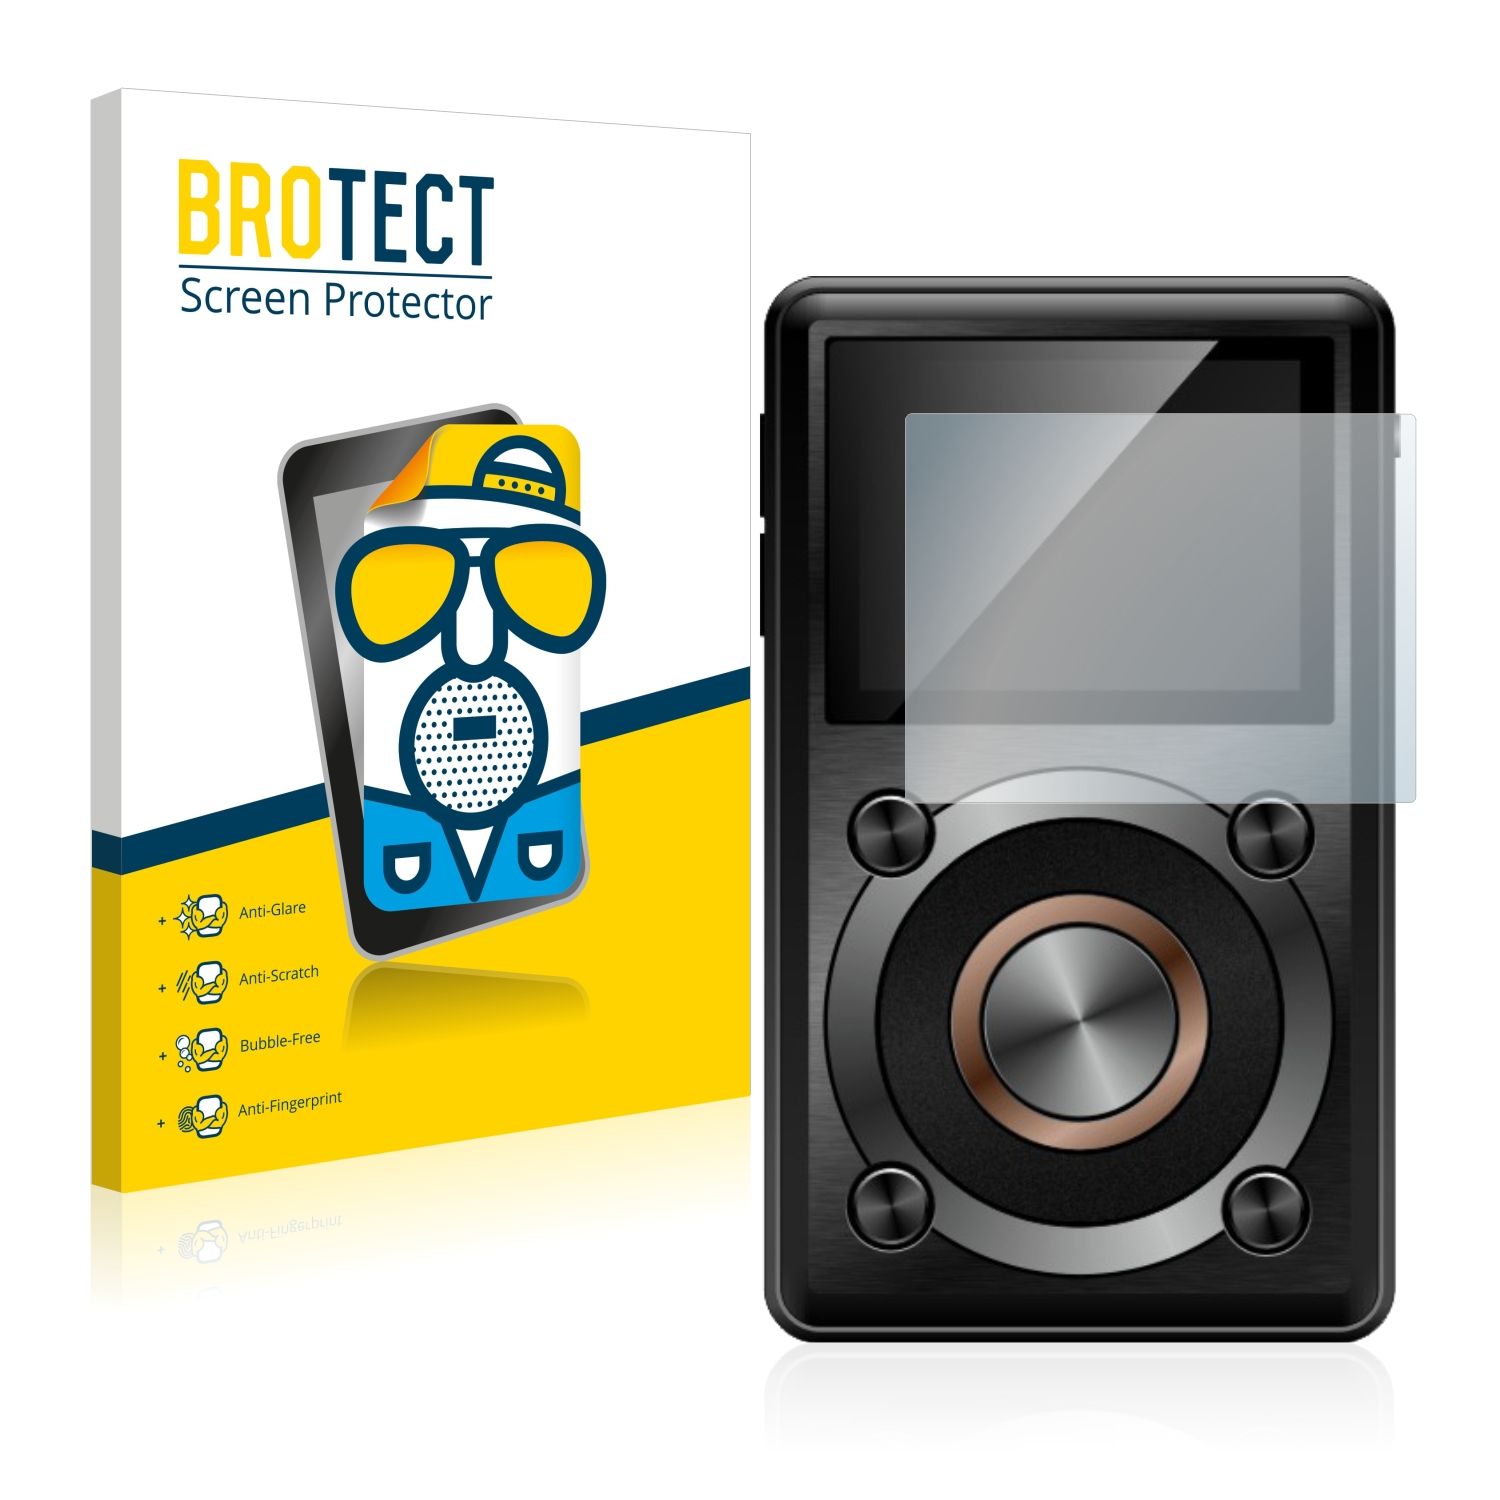 2x-BROTECT-Matte-Screen-Protector-for-FiiO-X1-Protection-Film